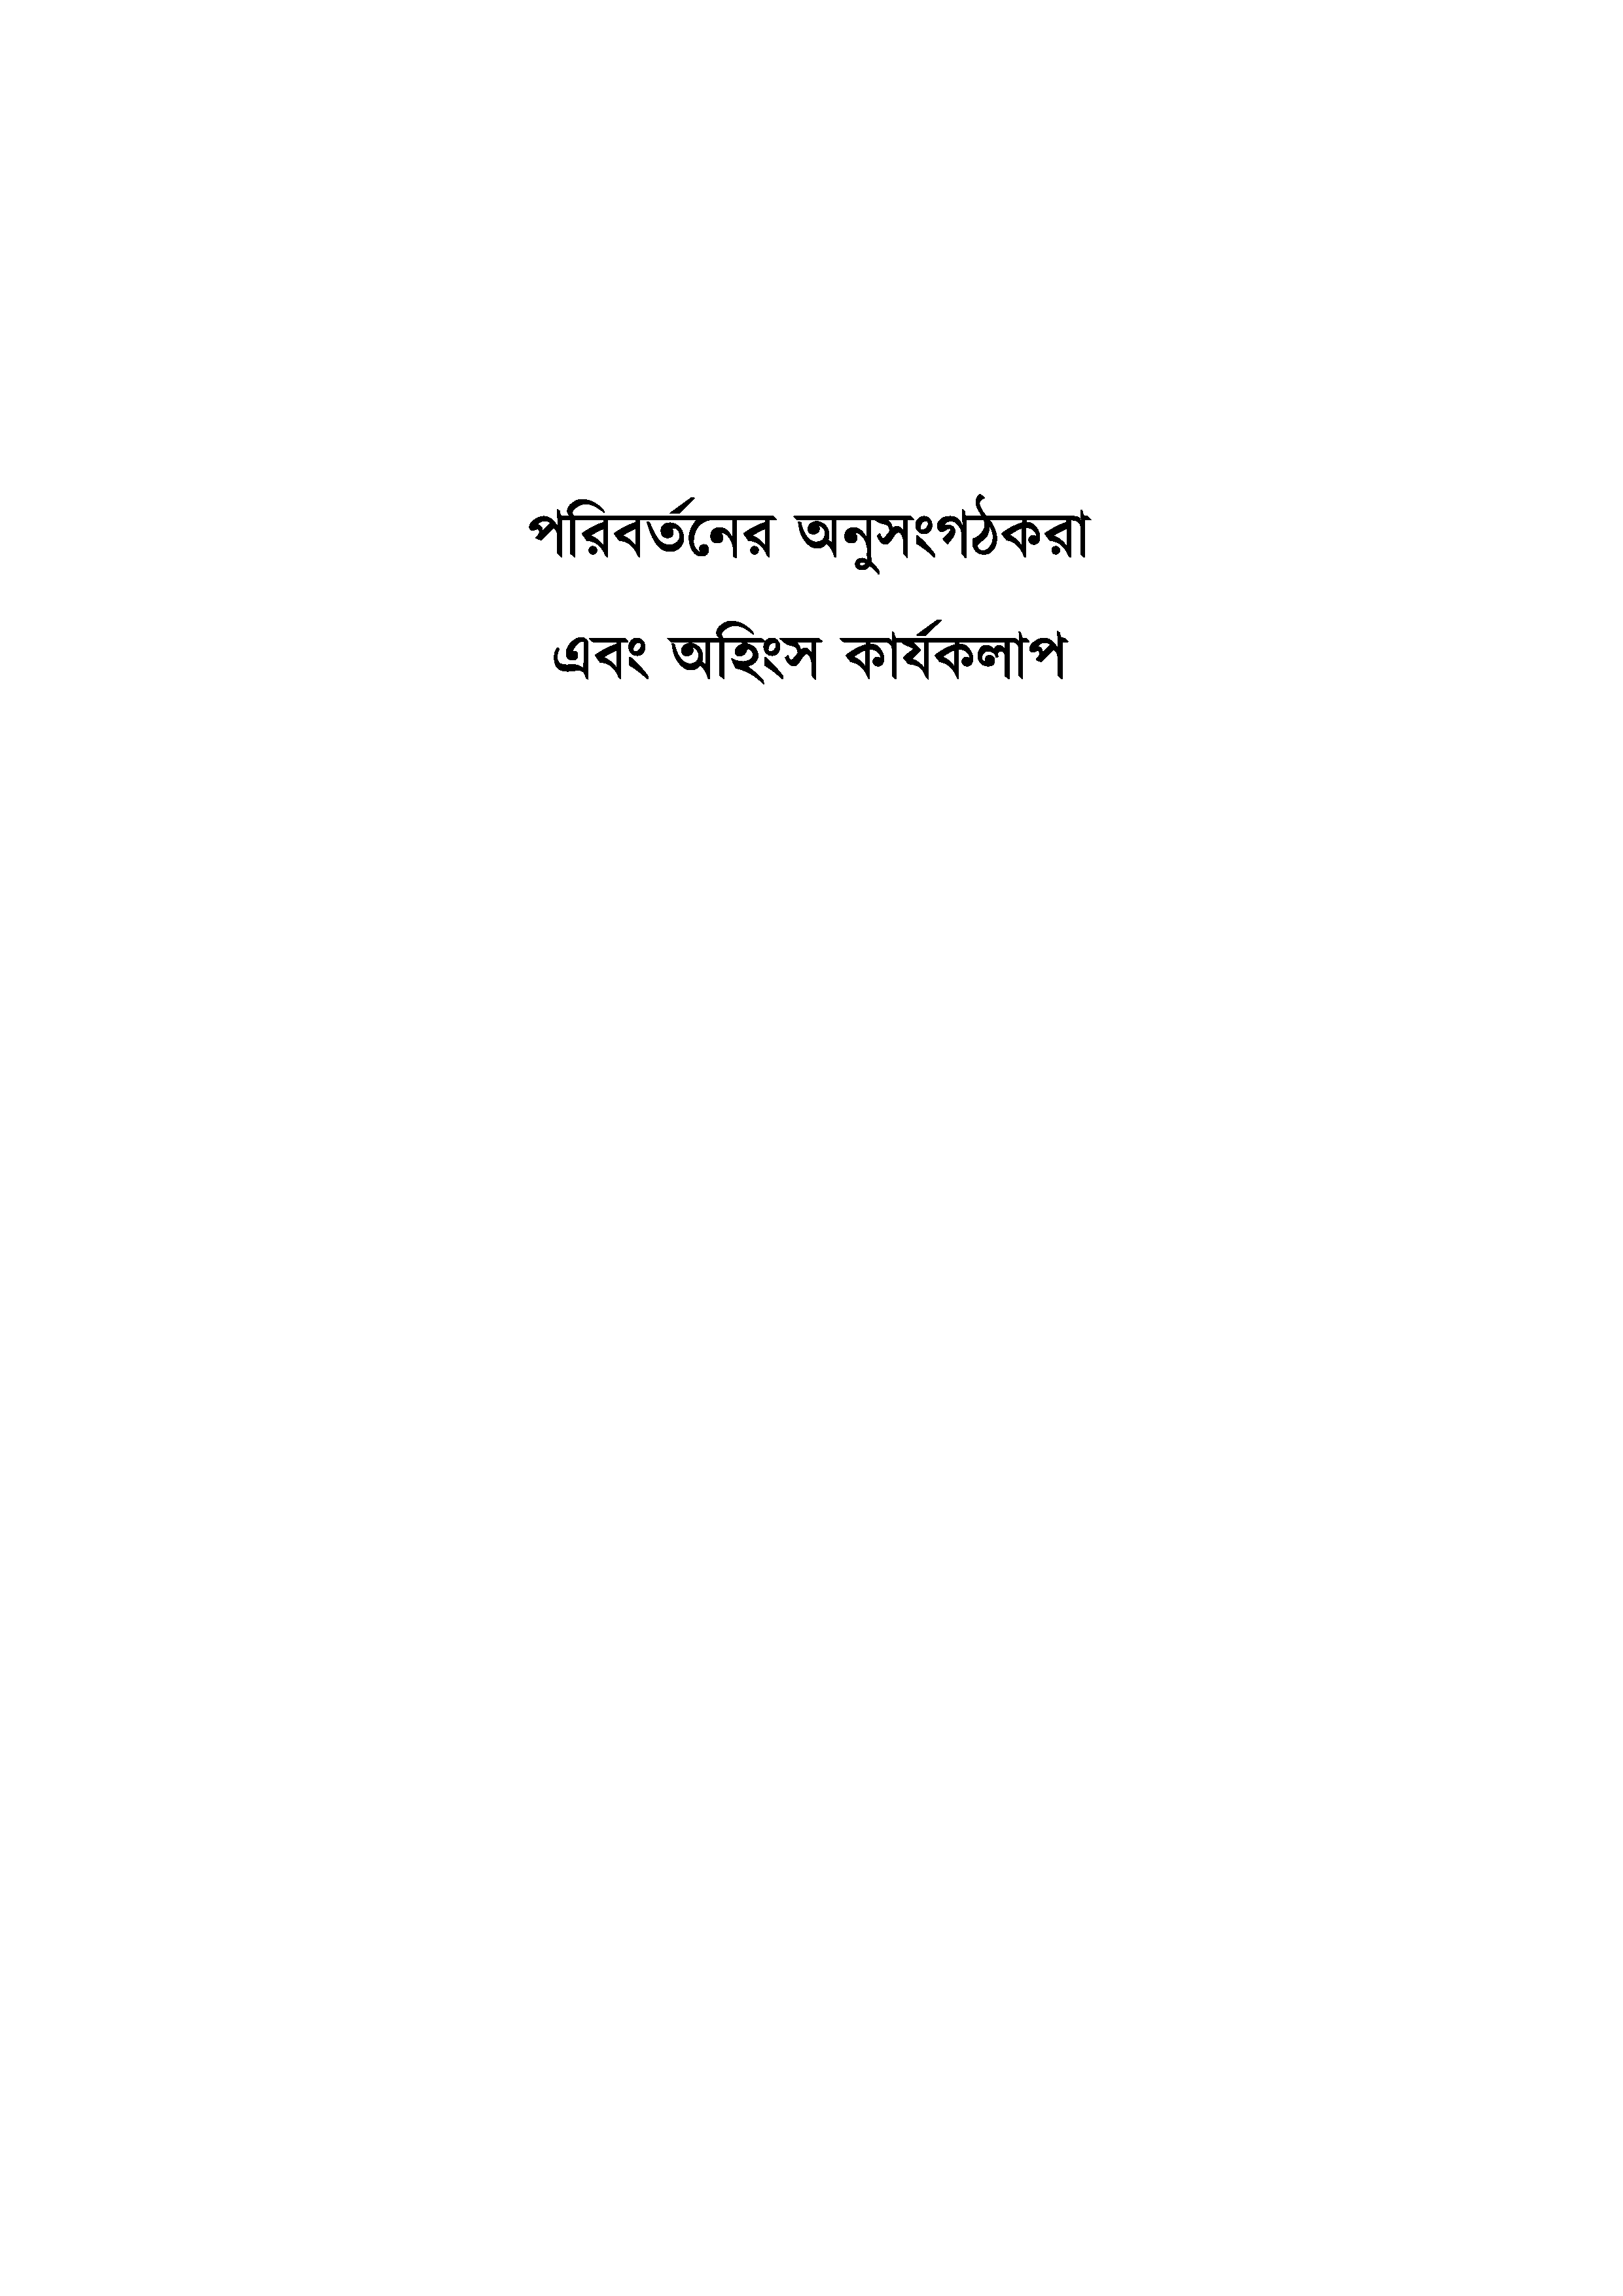 Agents of Change and Nonviolent Action (Bangla)